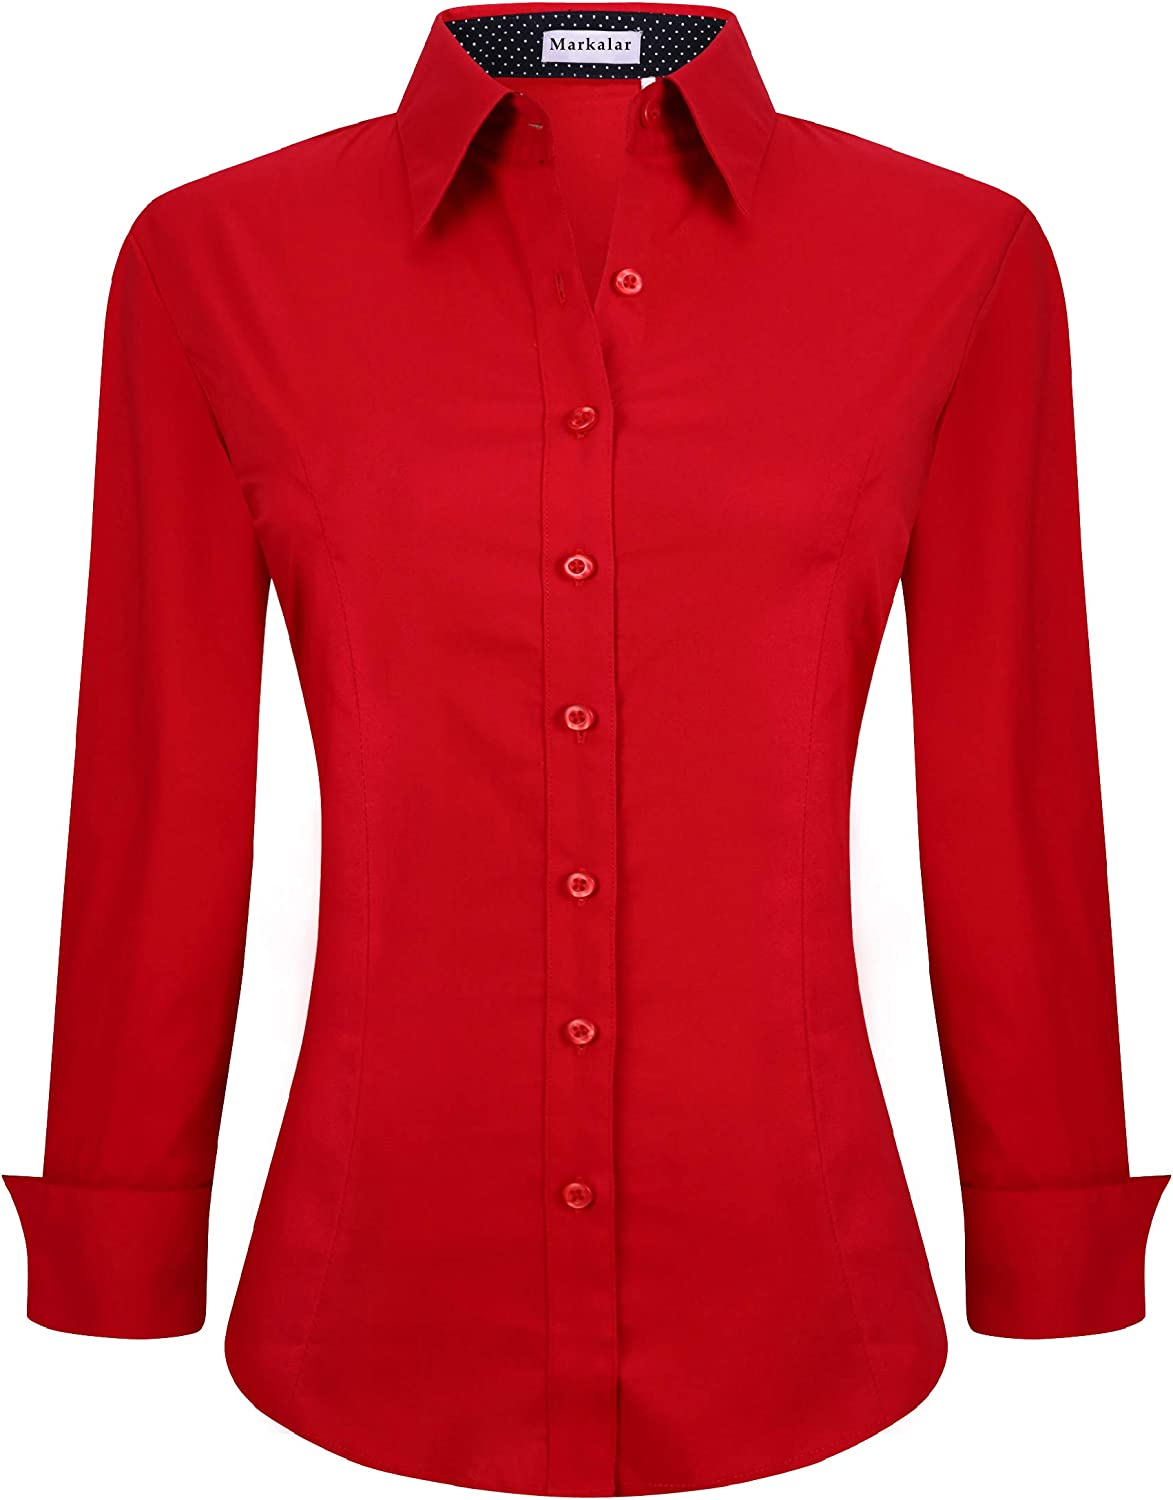 Womens Cotton Stretch Button Down Free Shipping New Ranking TOP19 Long Sleeve Regular Shirt Fit